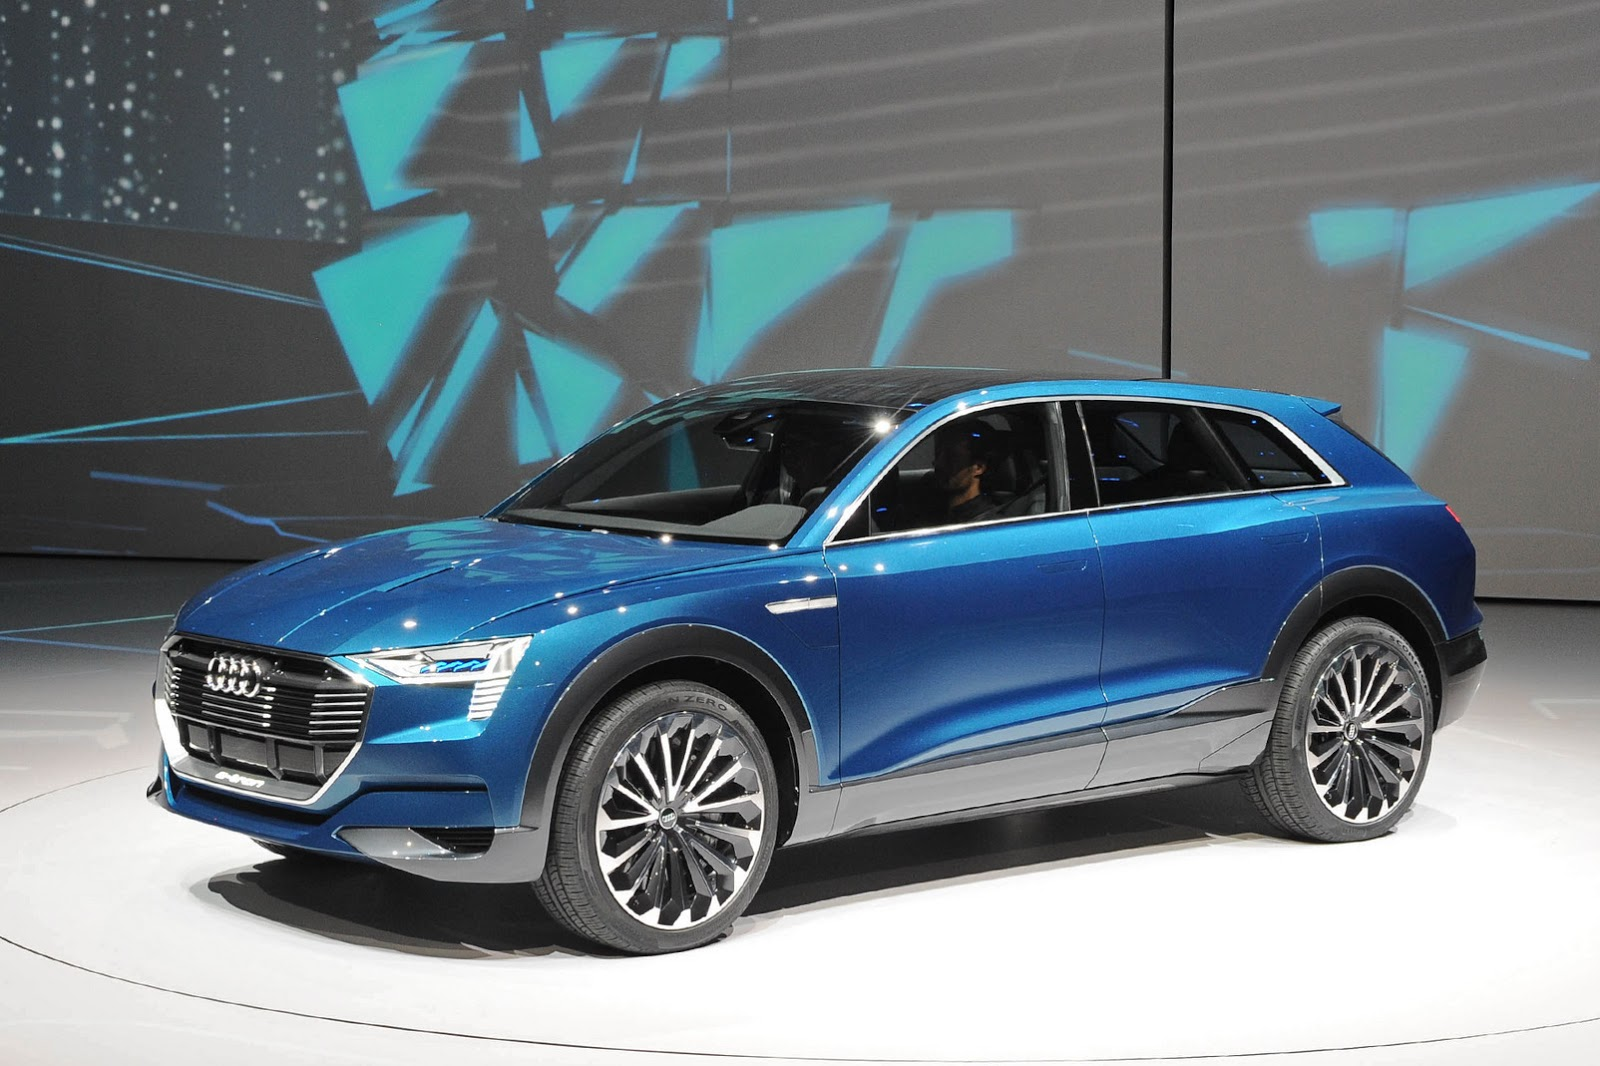 Electric Audi Q6 E-Tron Will Reportedly Be Produced In